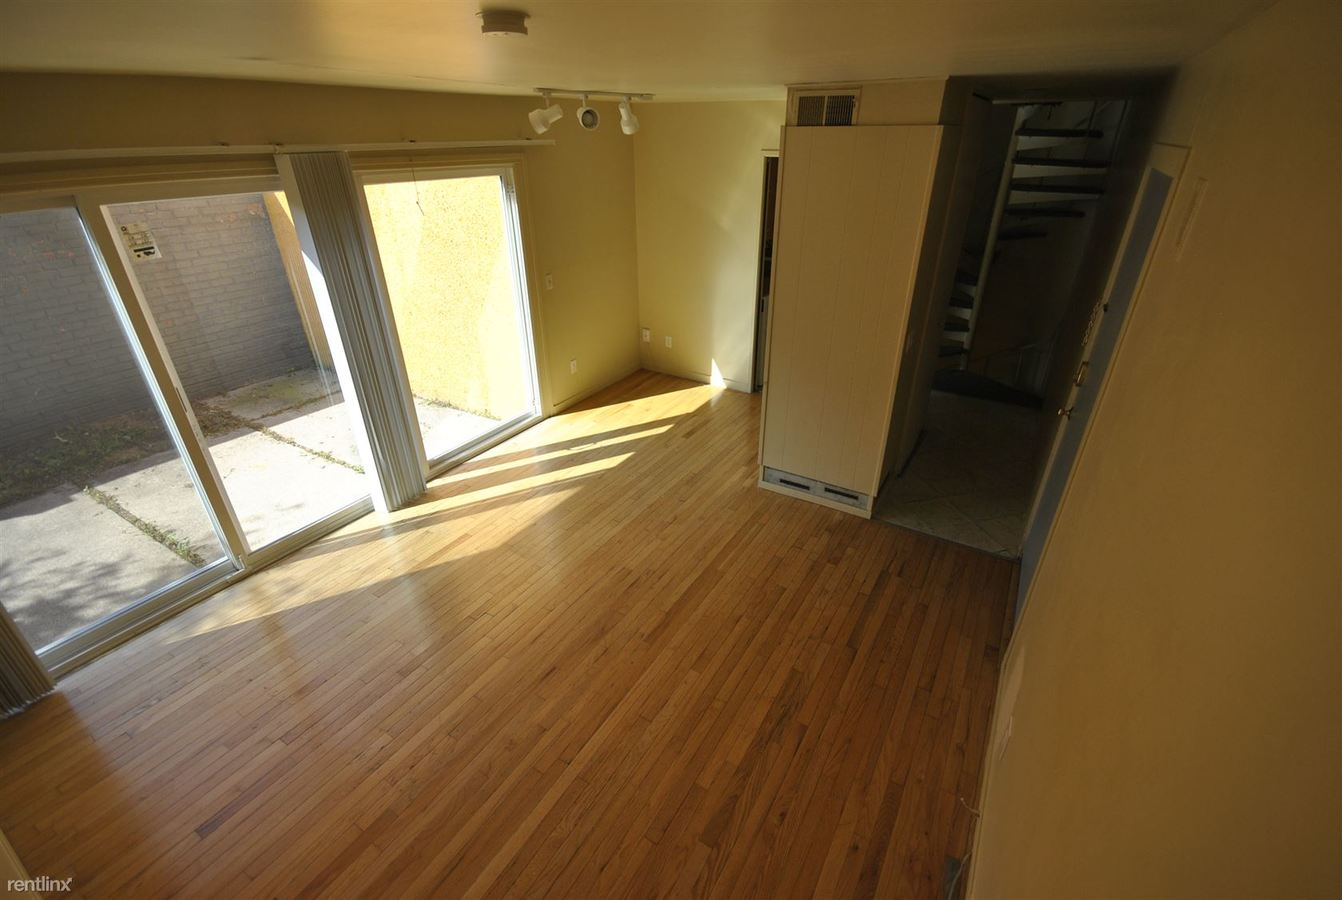 2 Bedrooms 1 Bathroom Apartment for rent at Fritz Lofts in Ann Arbor, MI